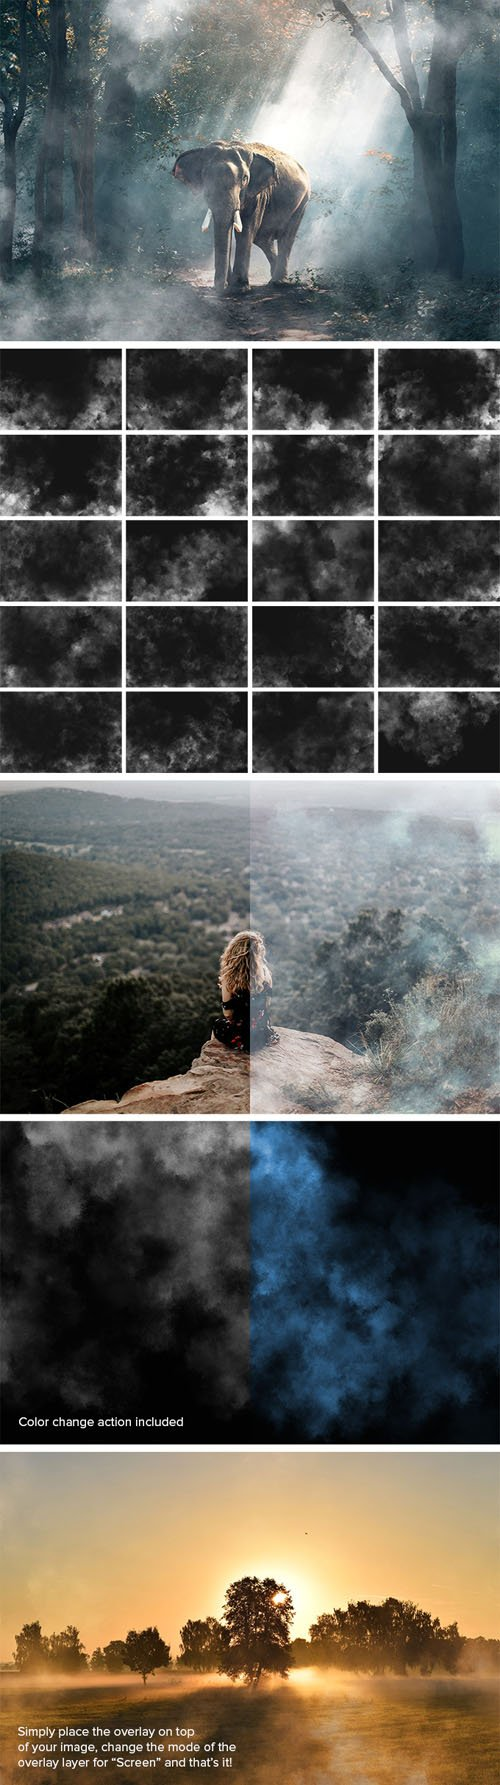 20 Mysterious Fog Overlays & Photoshop Actions